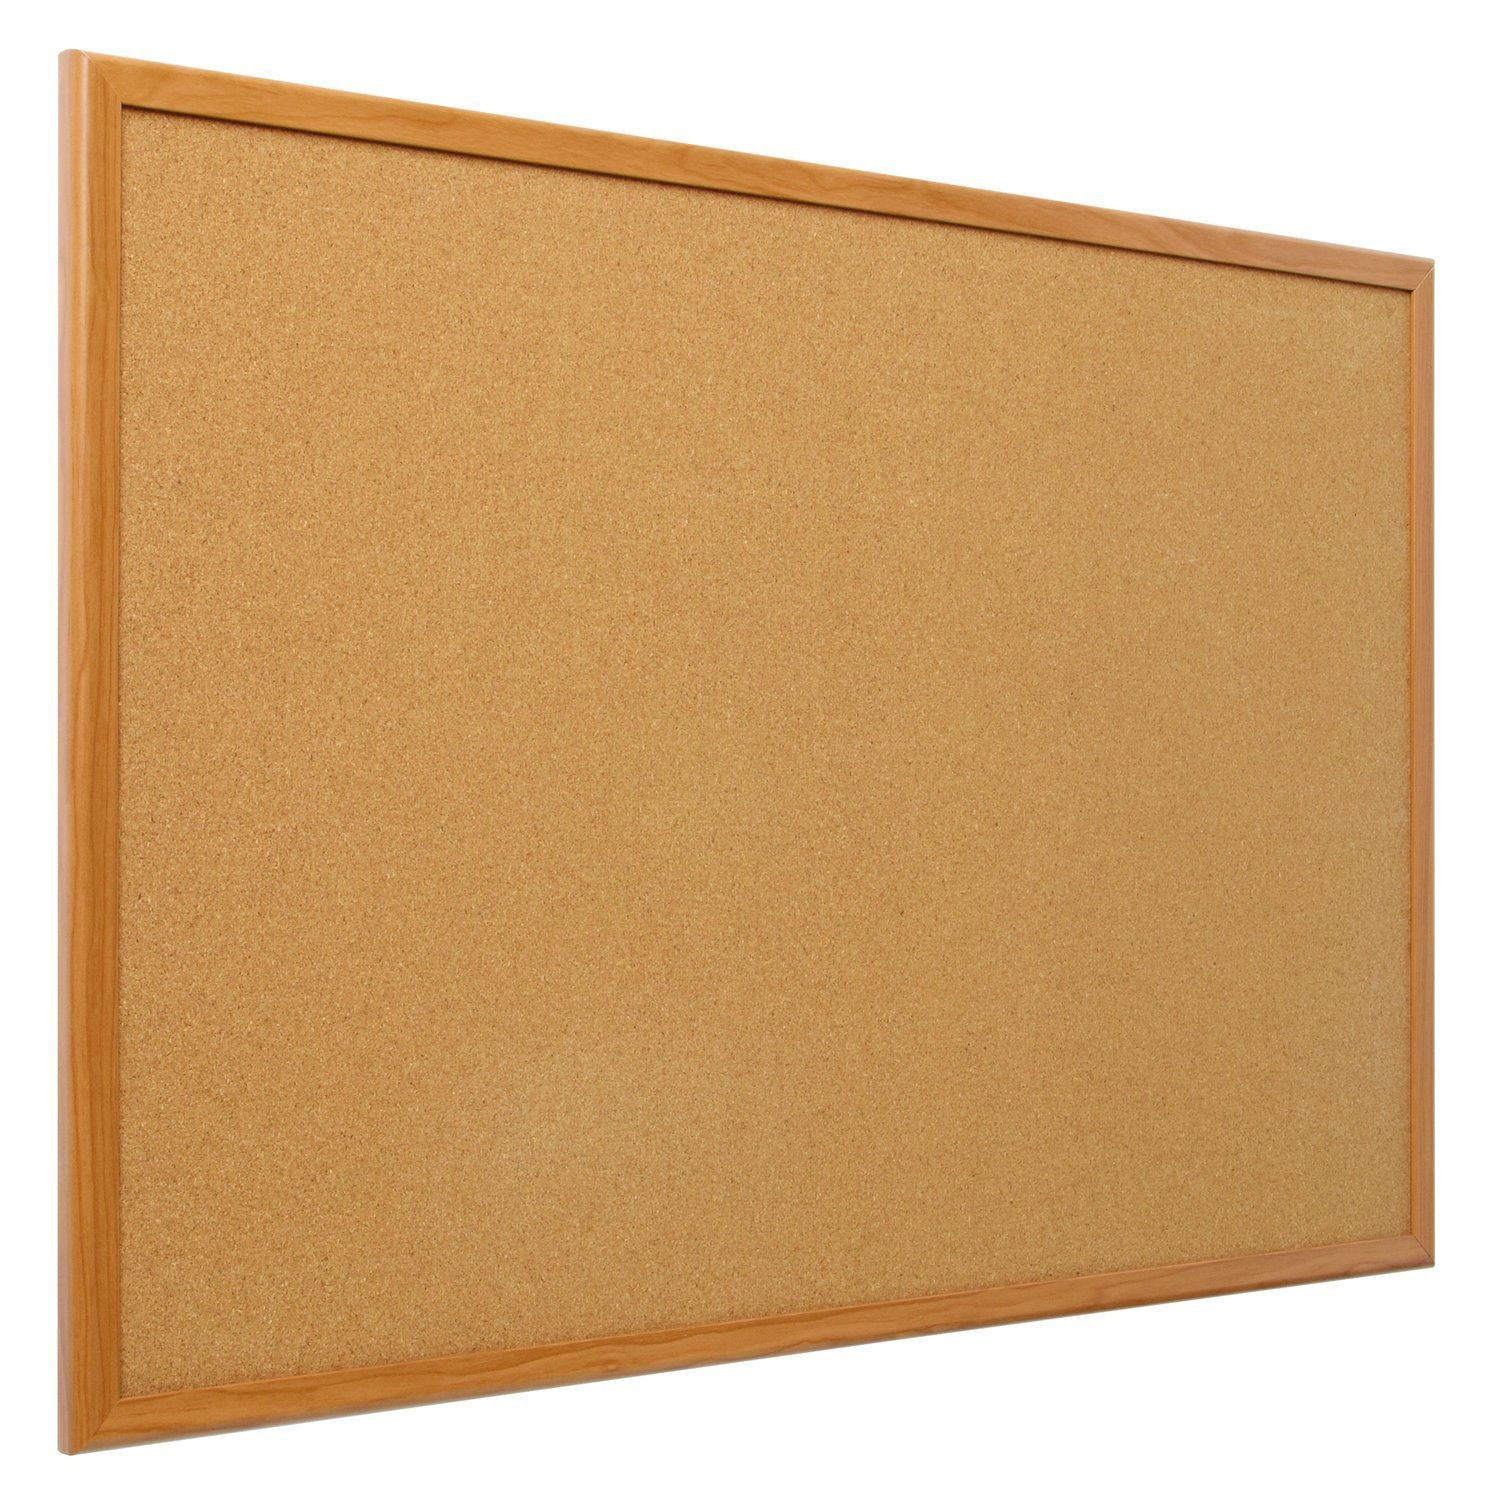 Cork Bulletin Board Amazoncom Quartet Bulletin Board Cork Board 2 X 3 Oak Wood